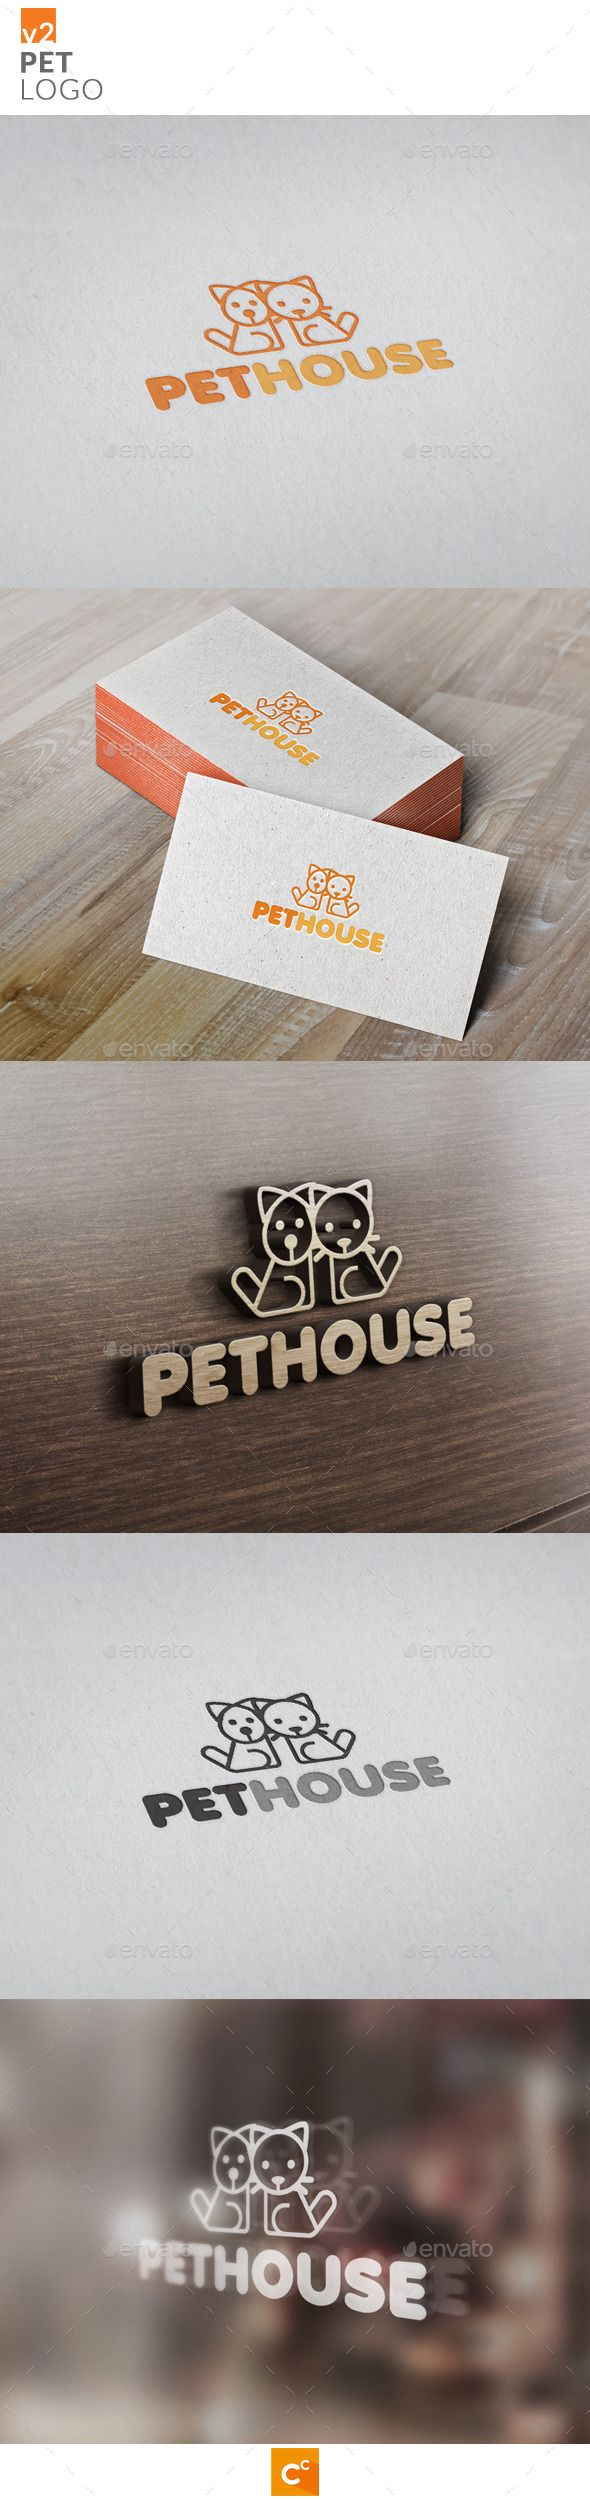 Pets Logo v2 - Animals Logo Templates